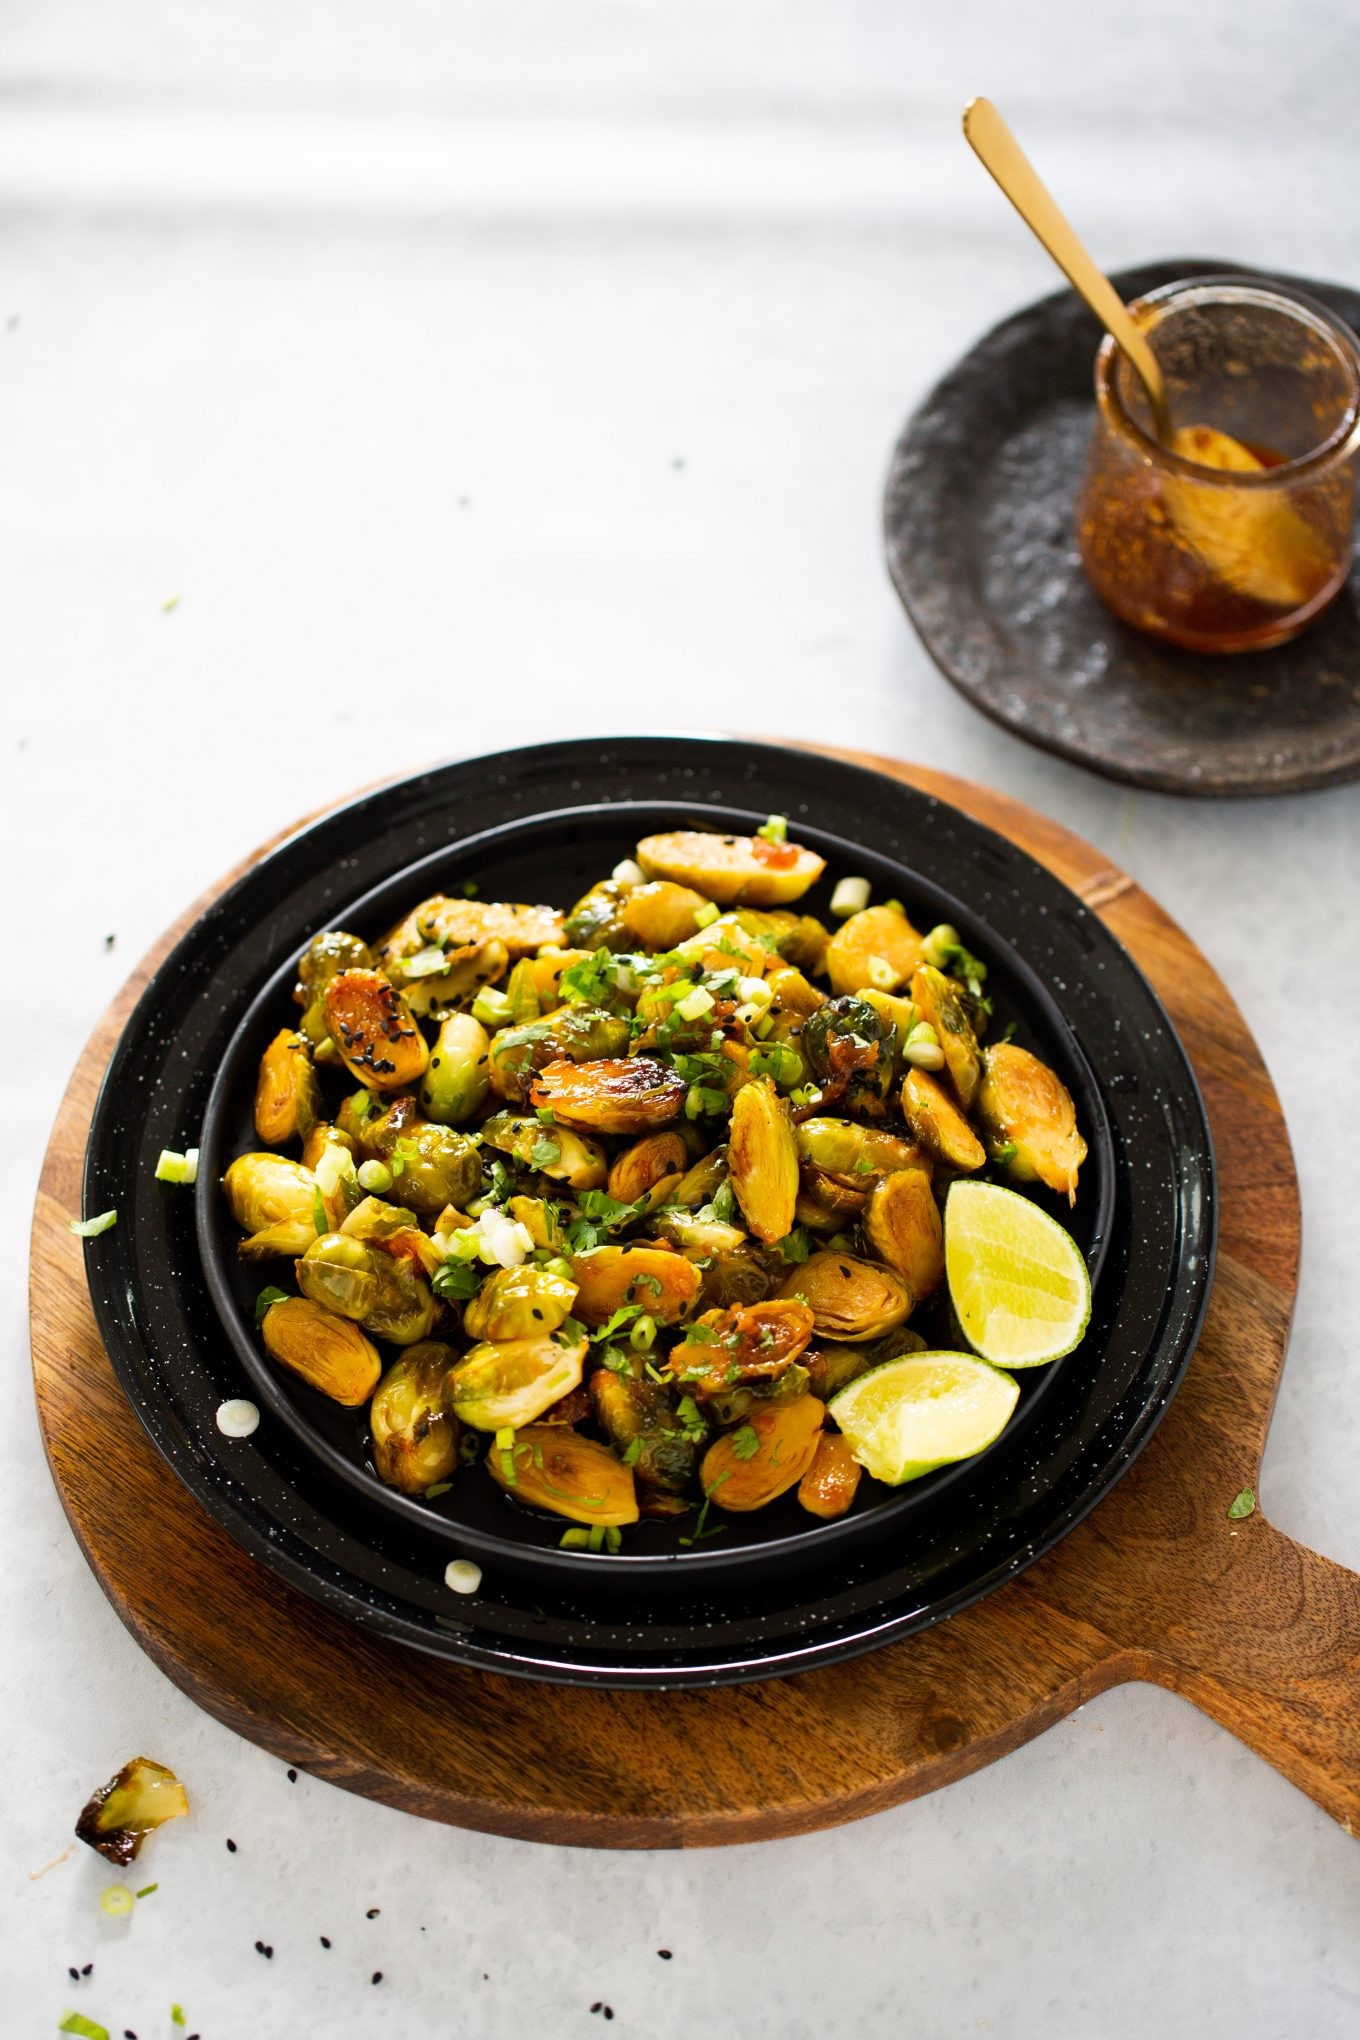 Roasted brussel sprouts with sweet and spicy sauce